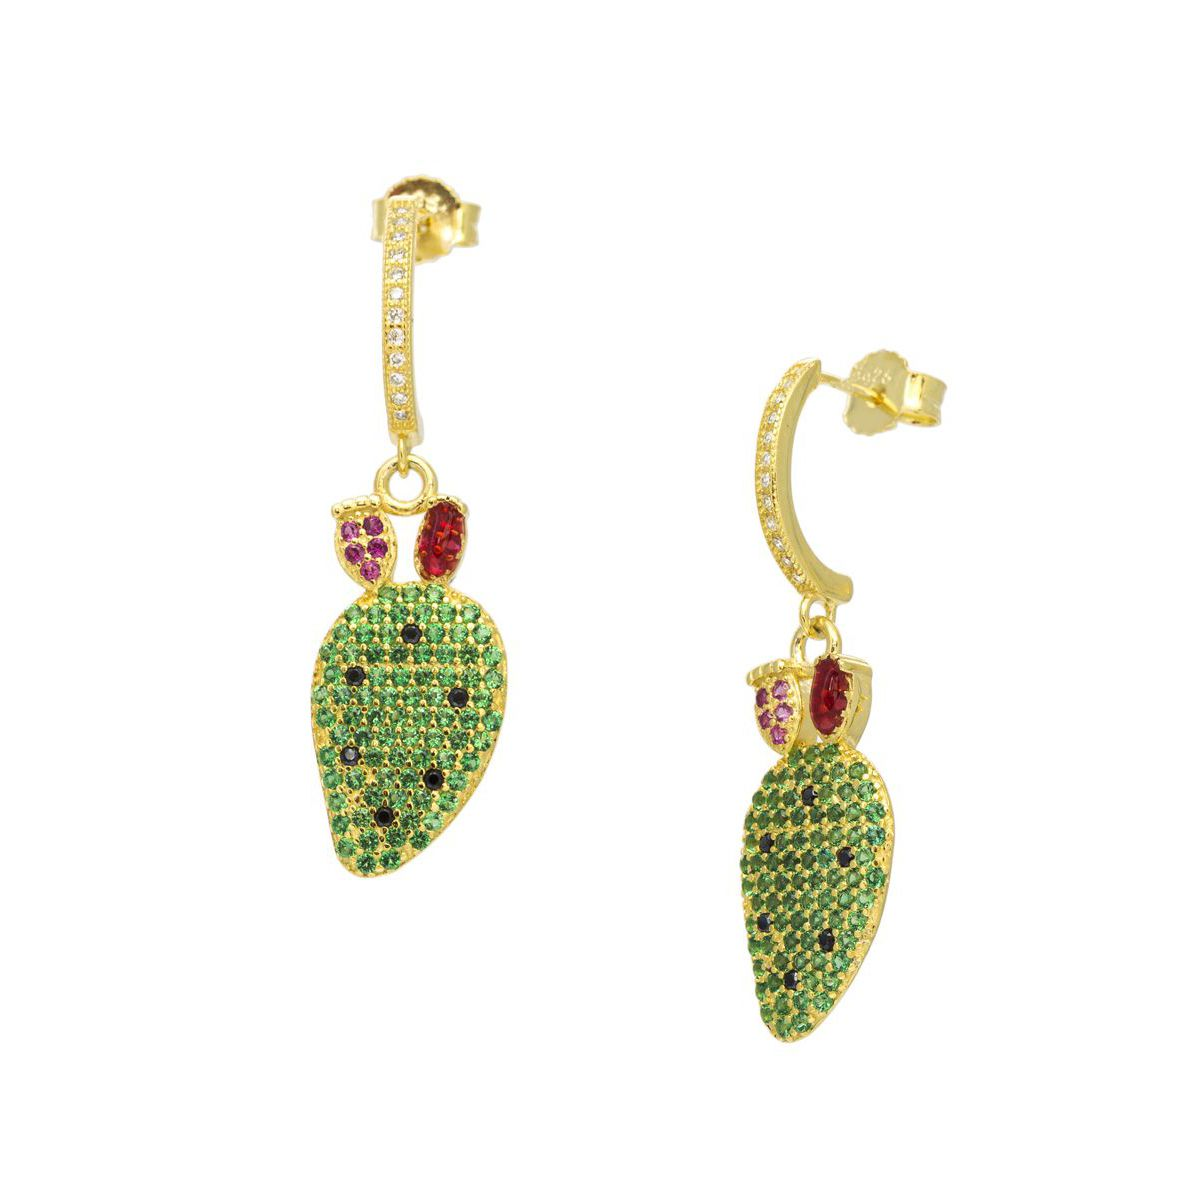 FIG SHOVEL EARRINGS GOLD Gold M'AMI SICILY JEWELS